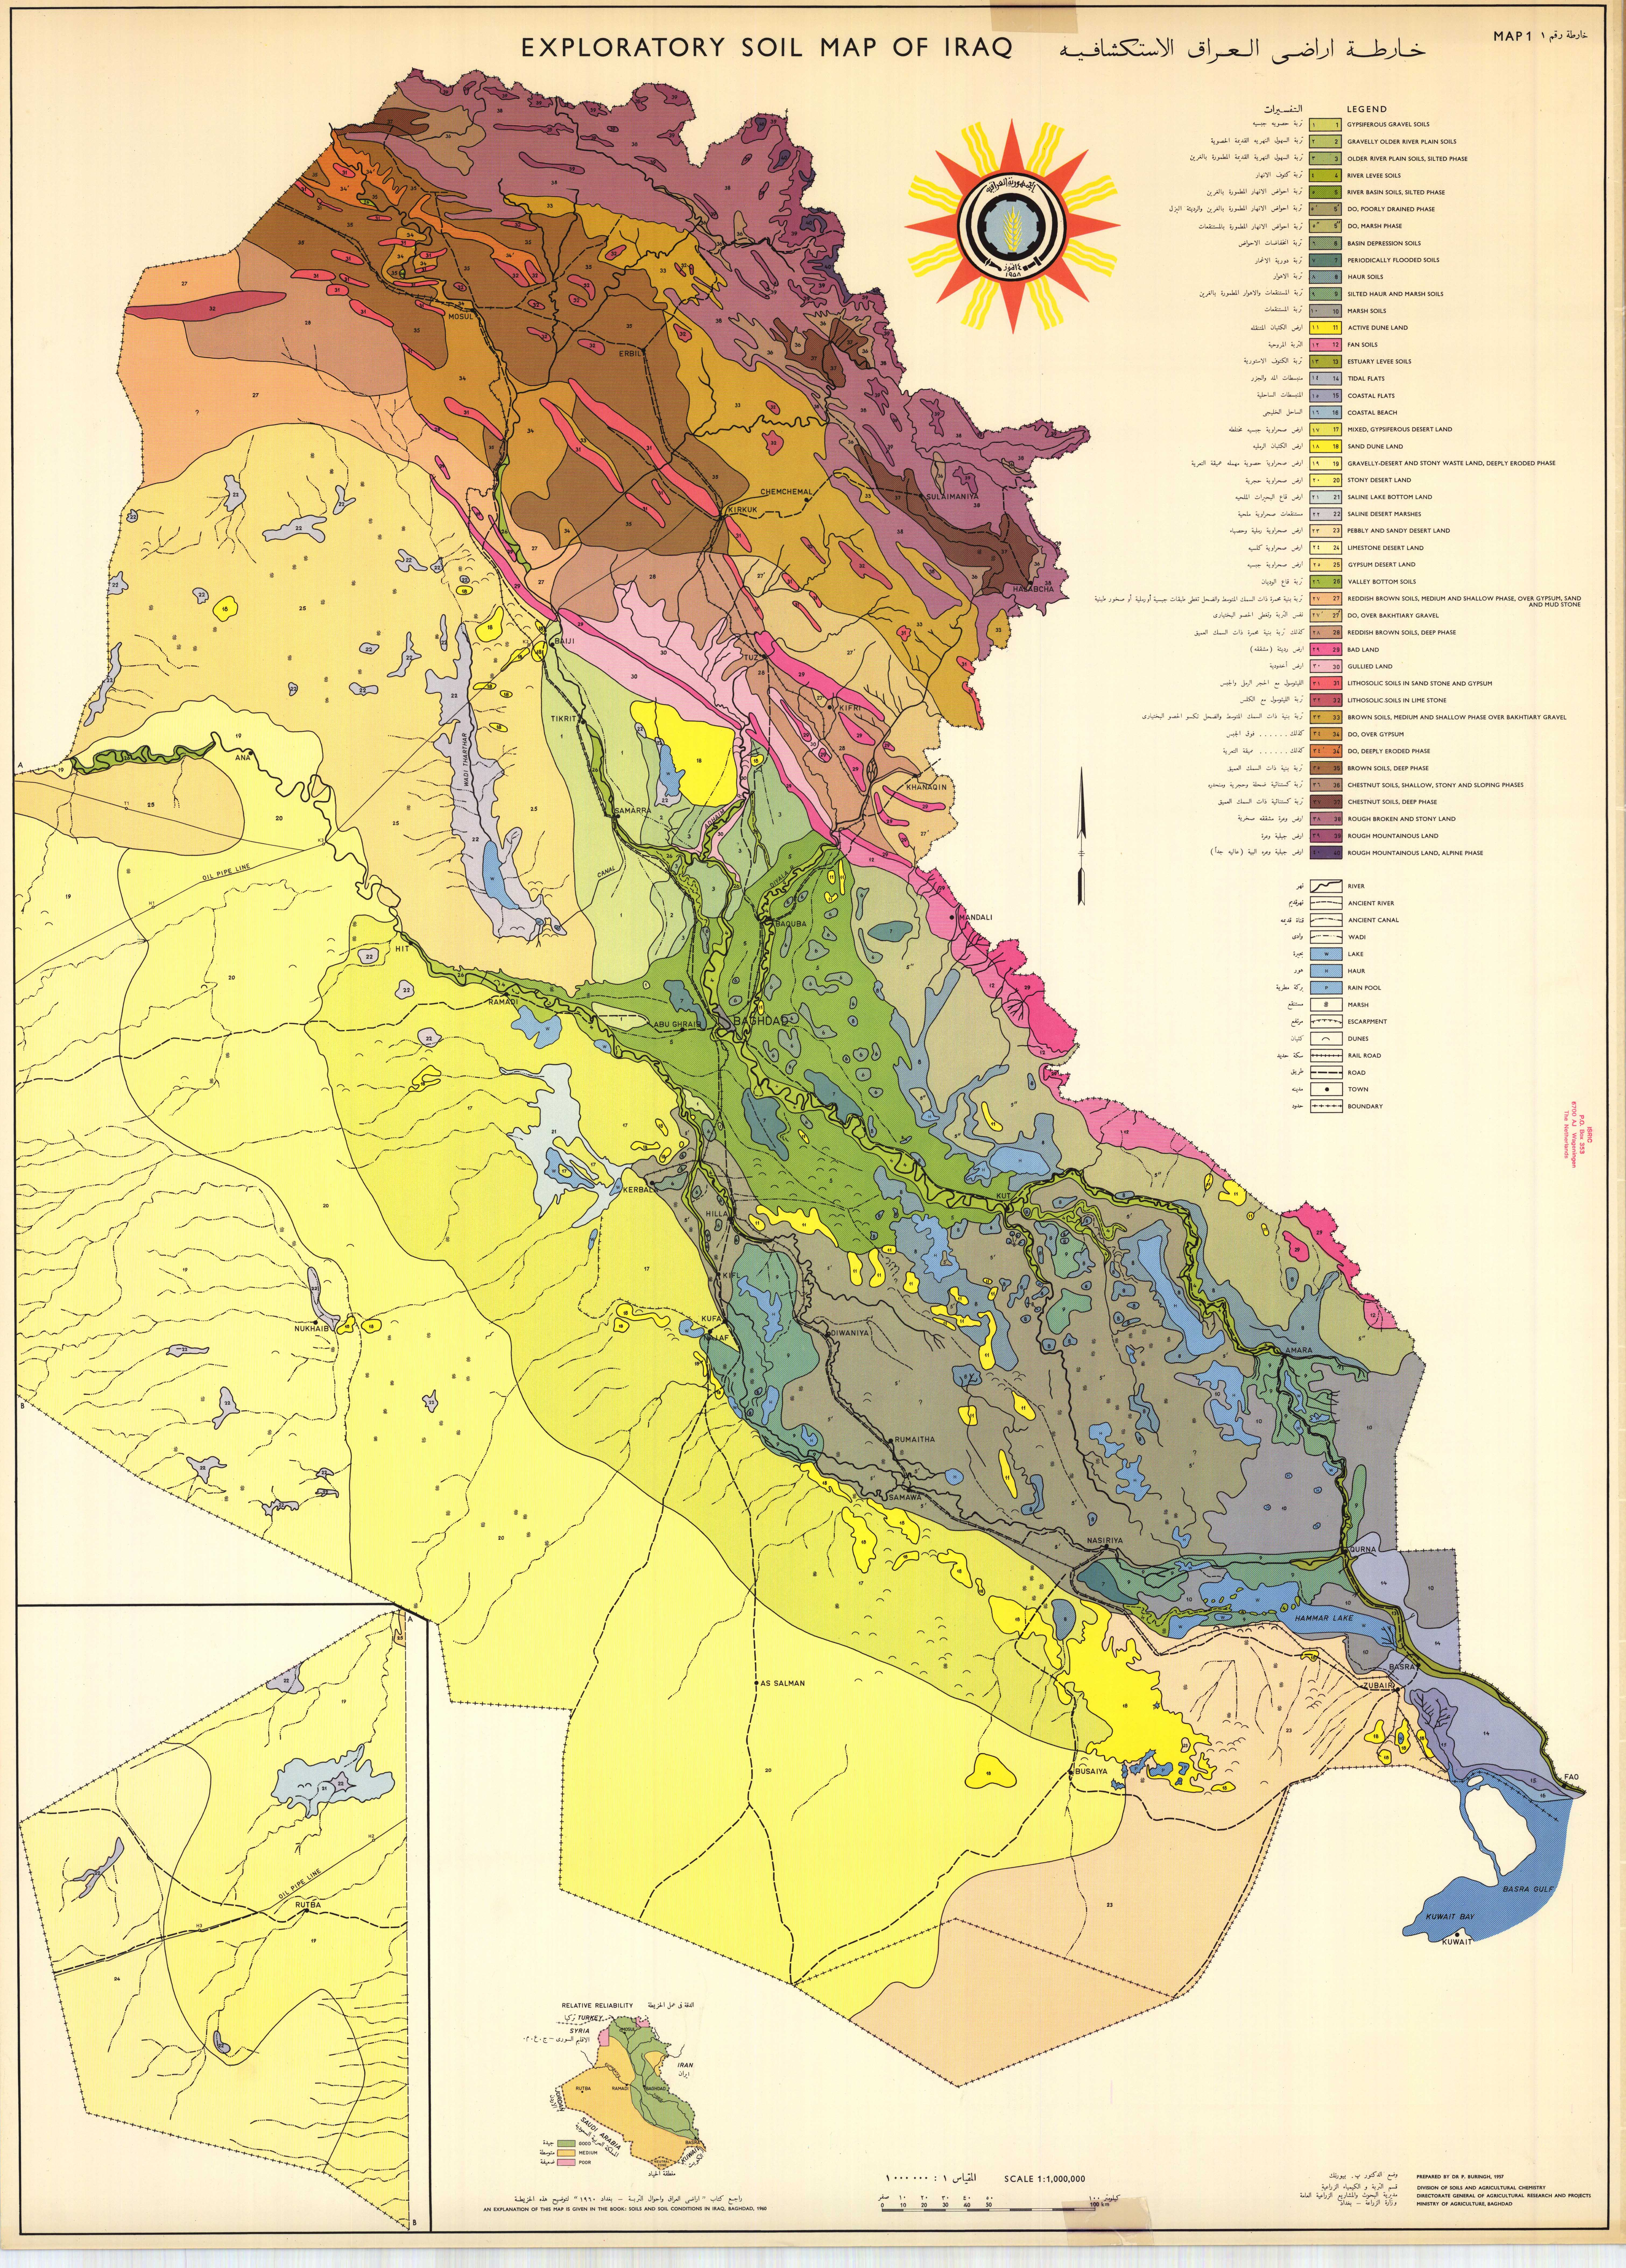 Exploratory Soil Map of Iraq Map 1 ESDAC European Commission – Map If Iraq